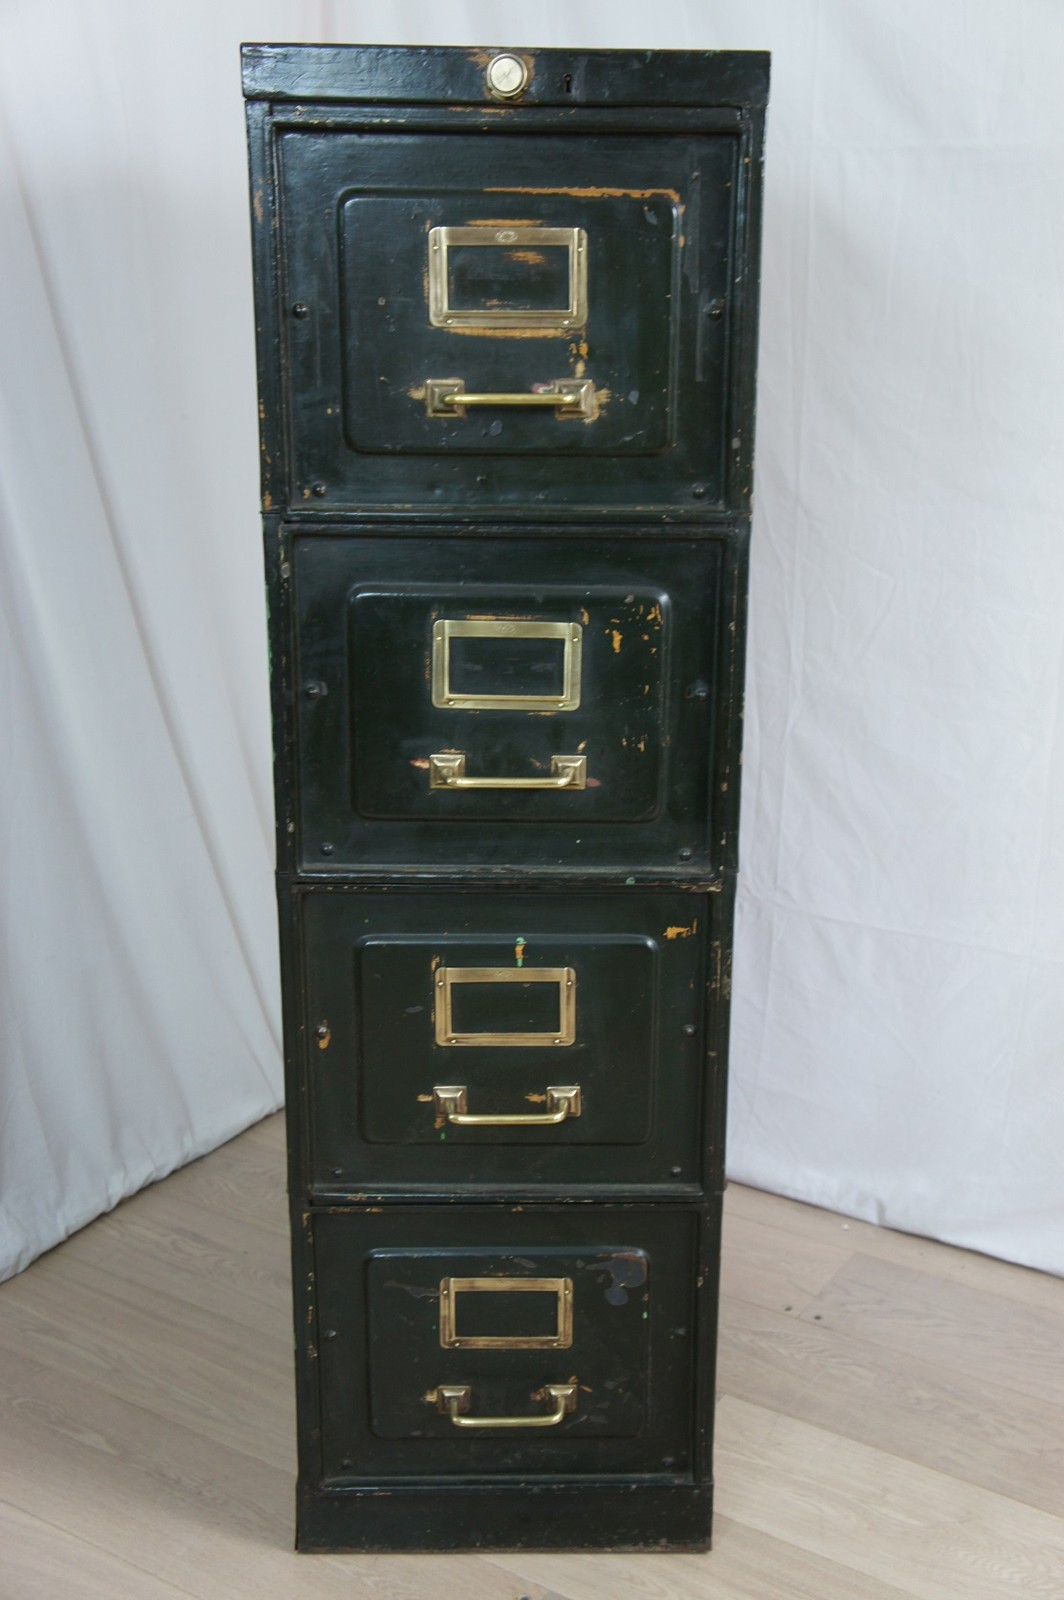 French Metal Factory Drawer Filing Cabinet - The Hoarde